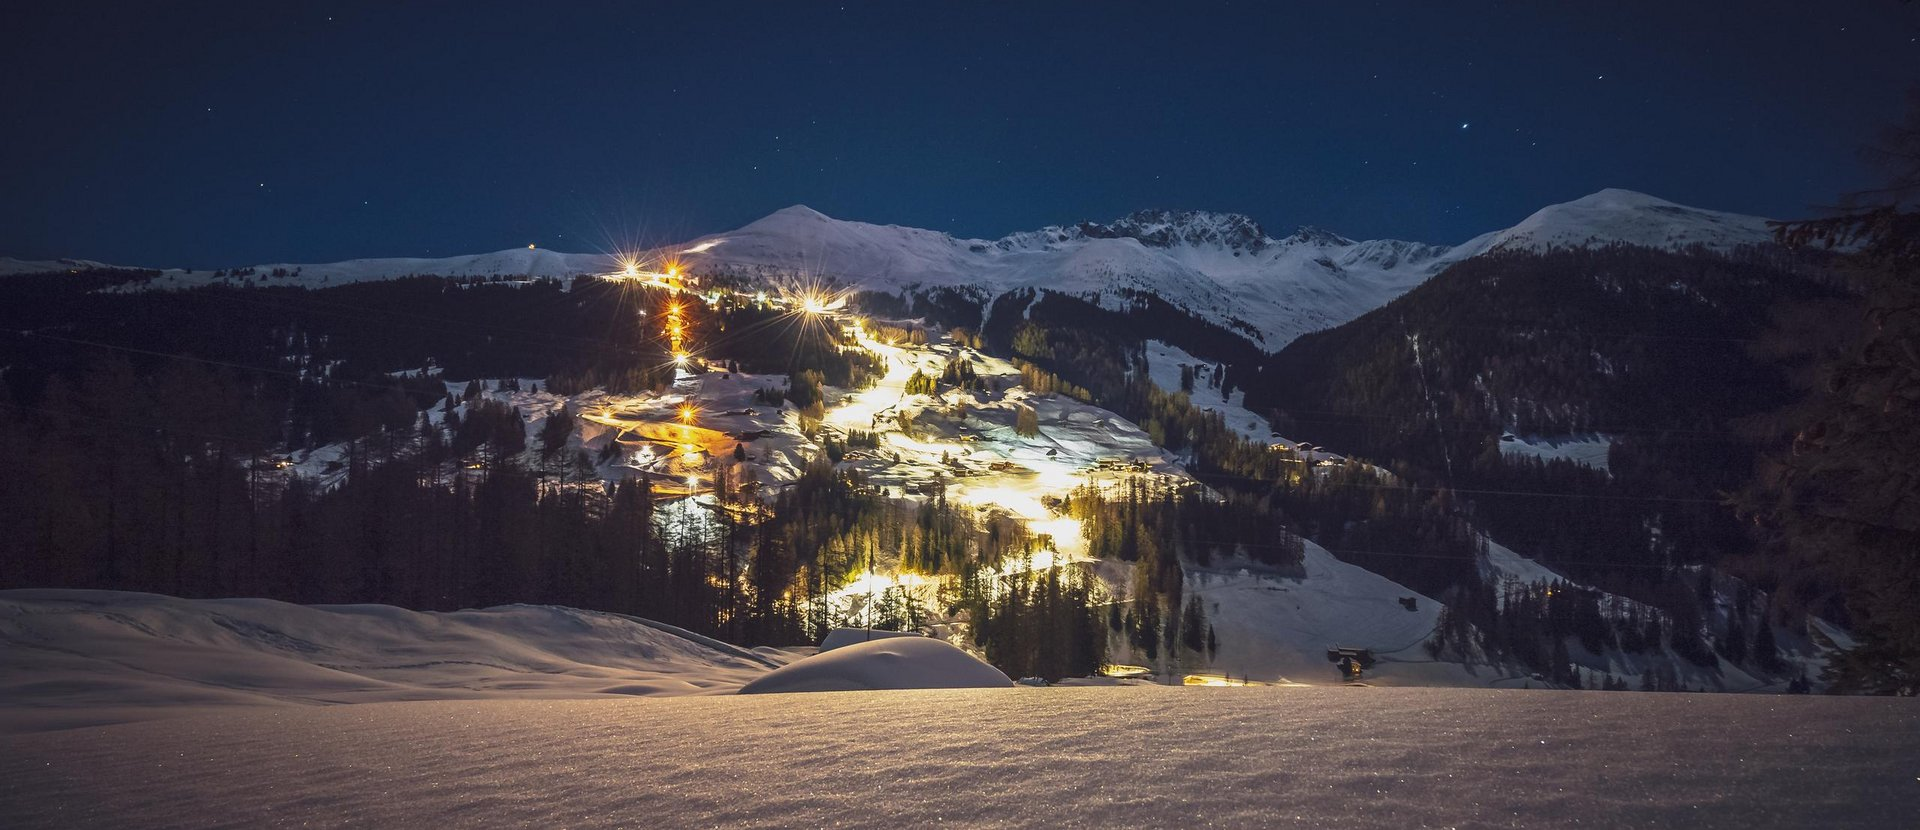 Winter sports at night